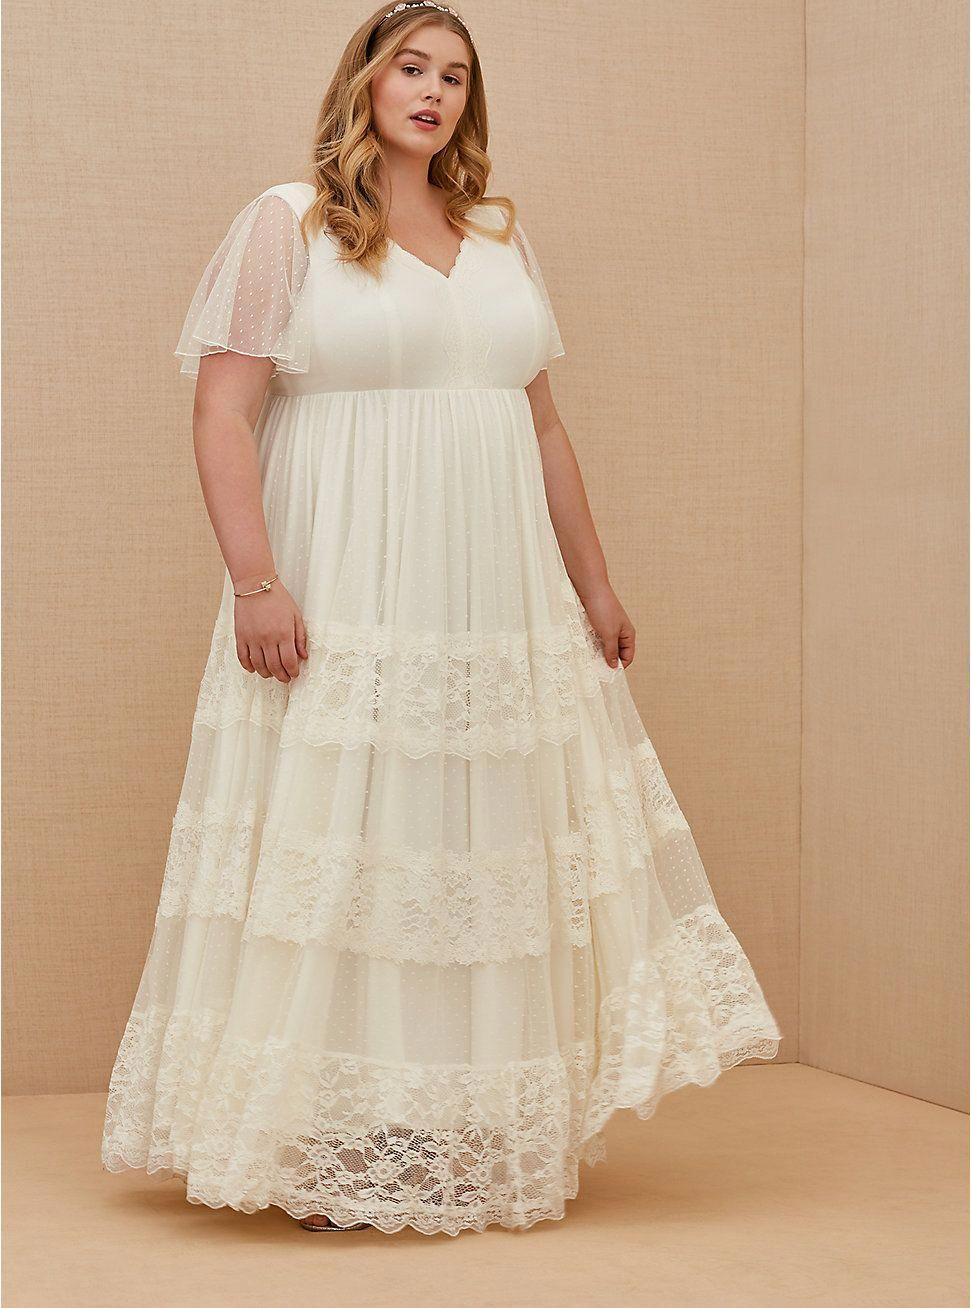 Marriage Gowns 12 Tips on Finding The Most Enchanting